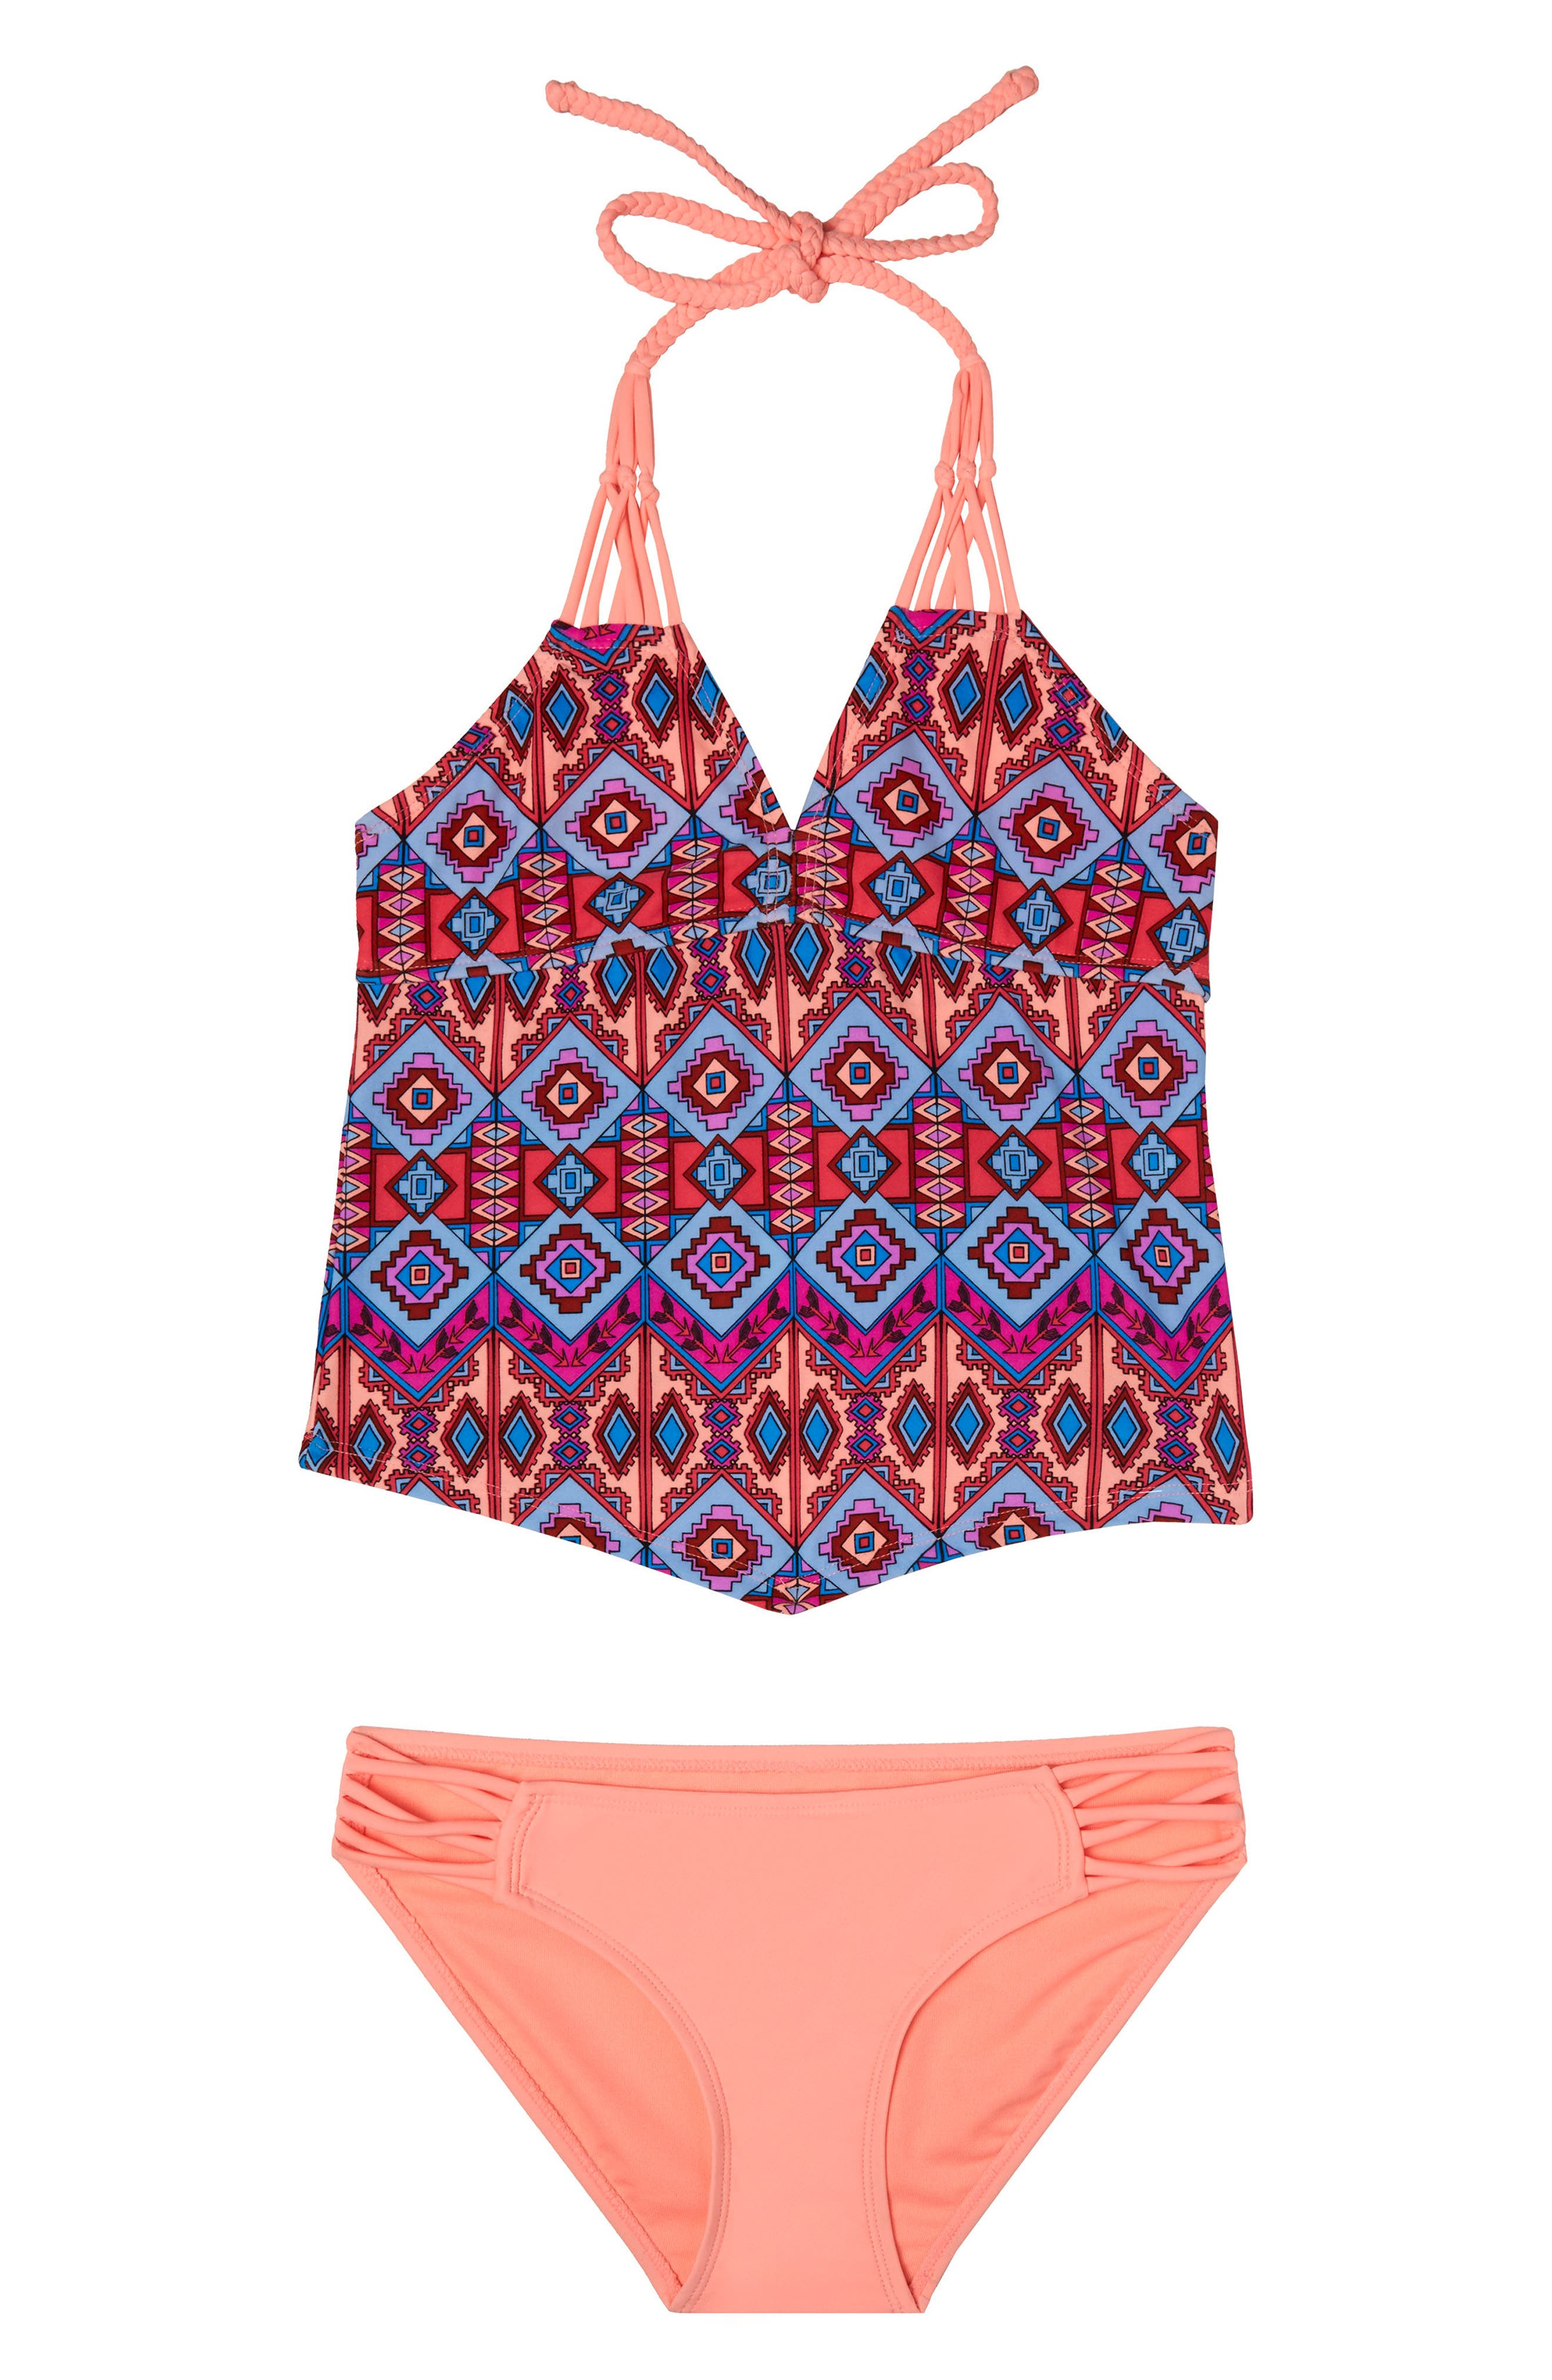 Brave Spirit Two-Piece Swimsuit,                         Main,                         color, Coral